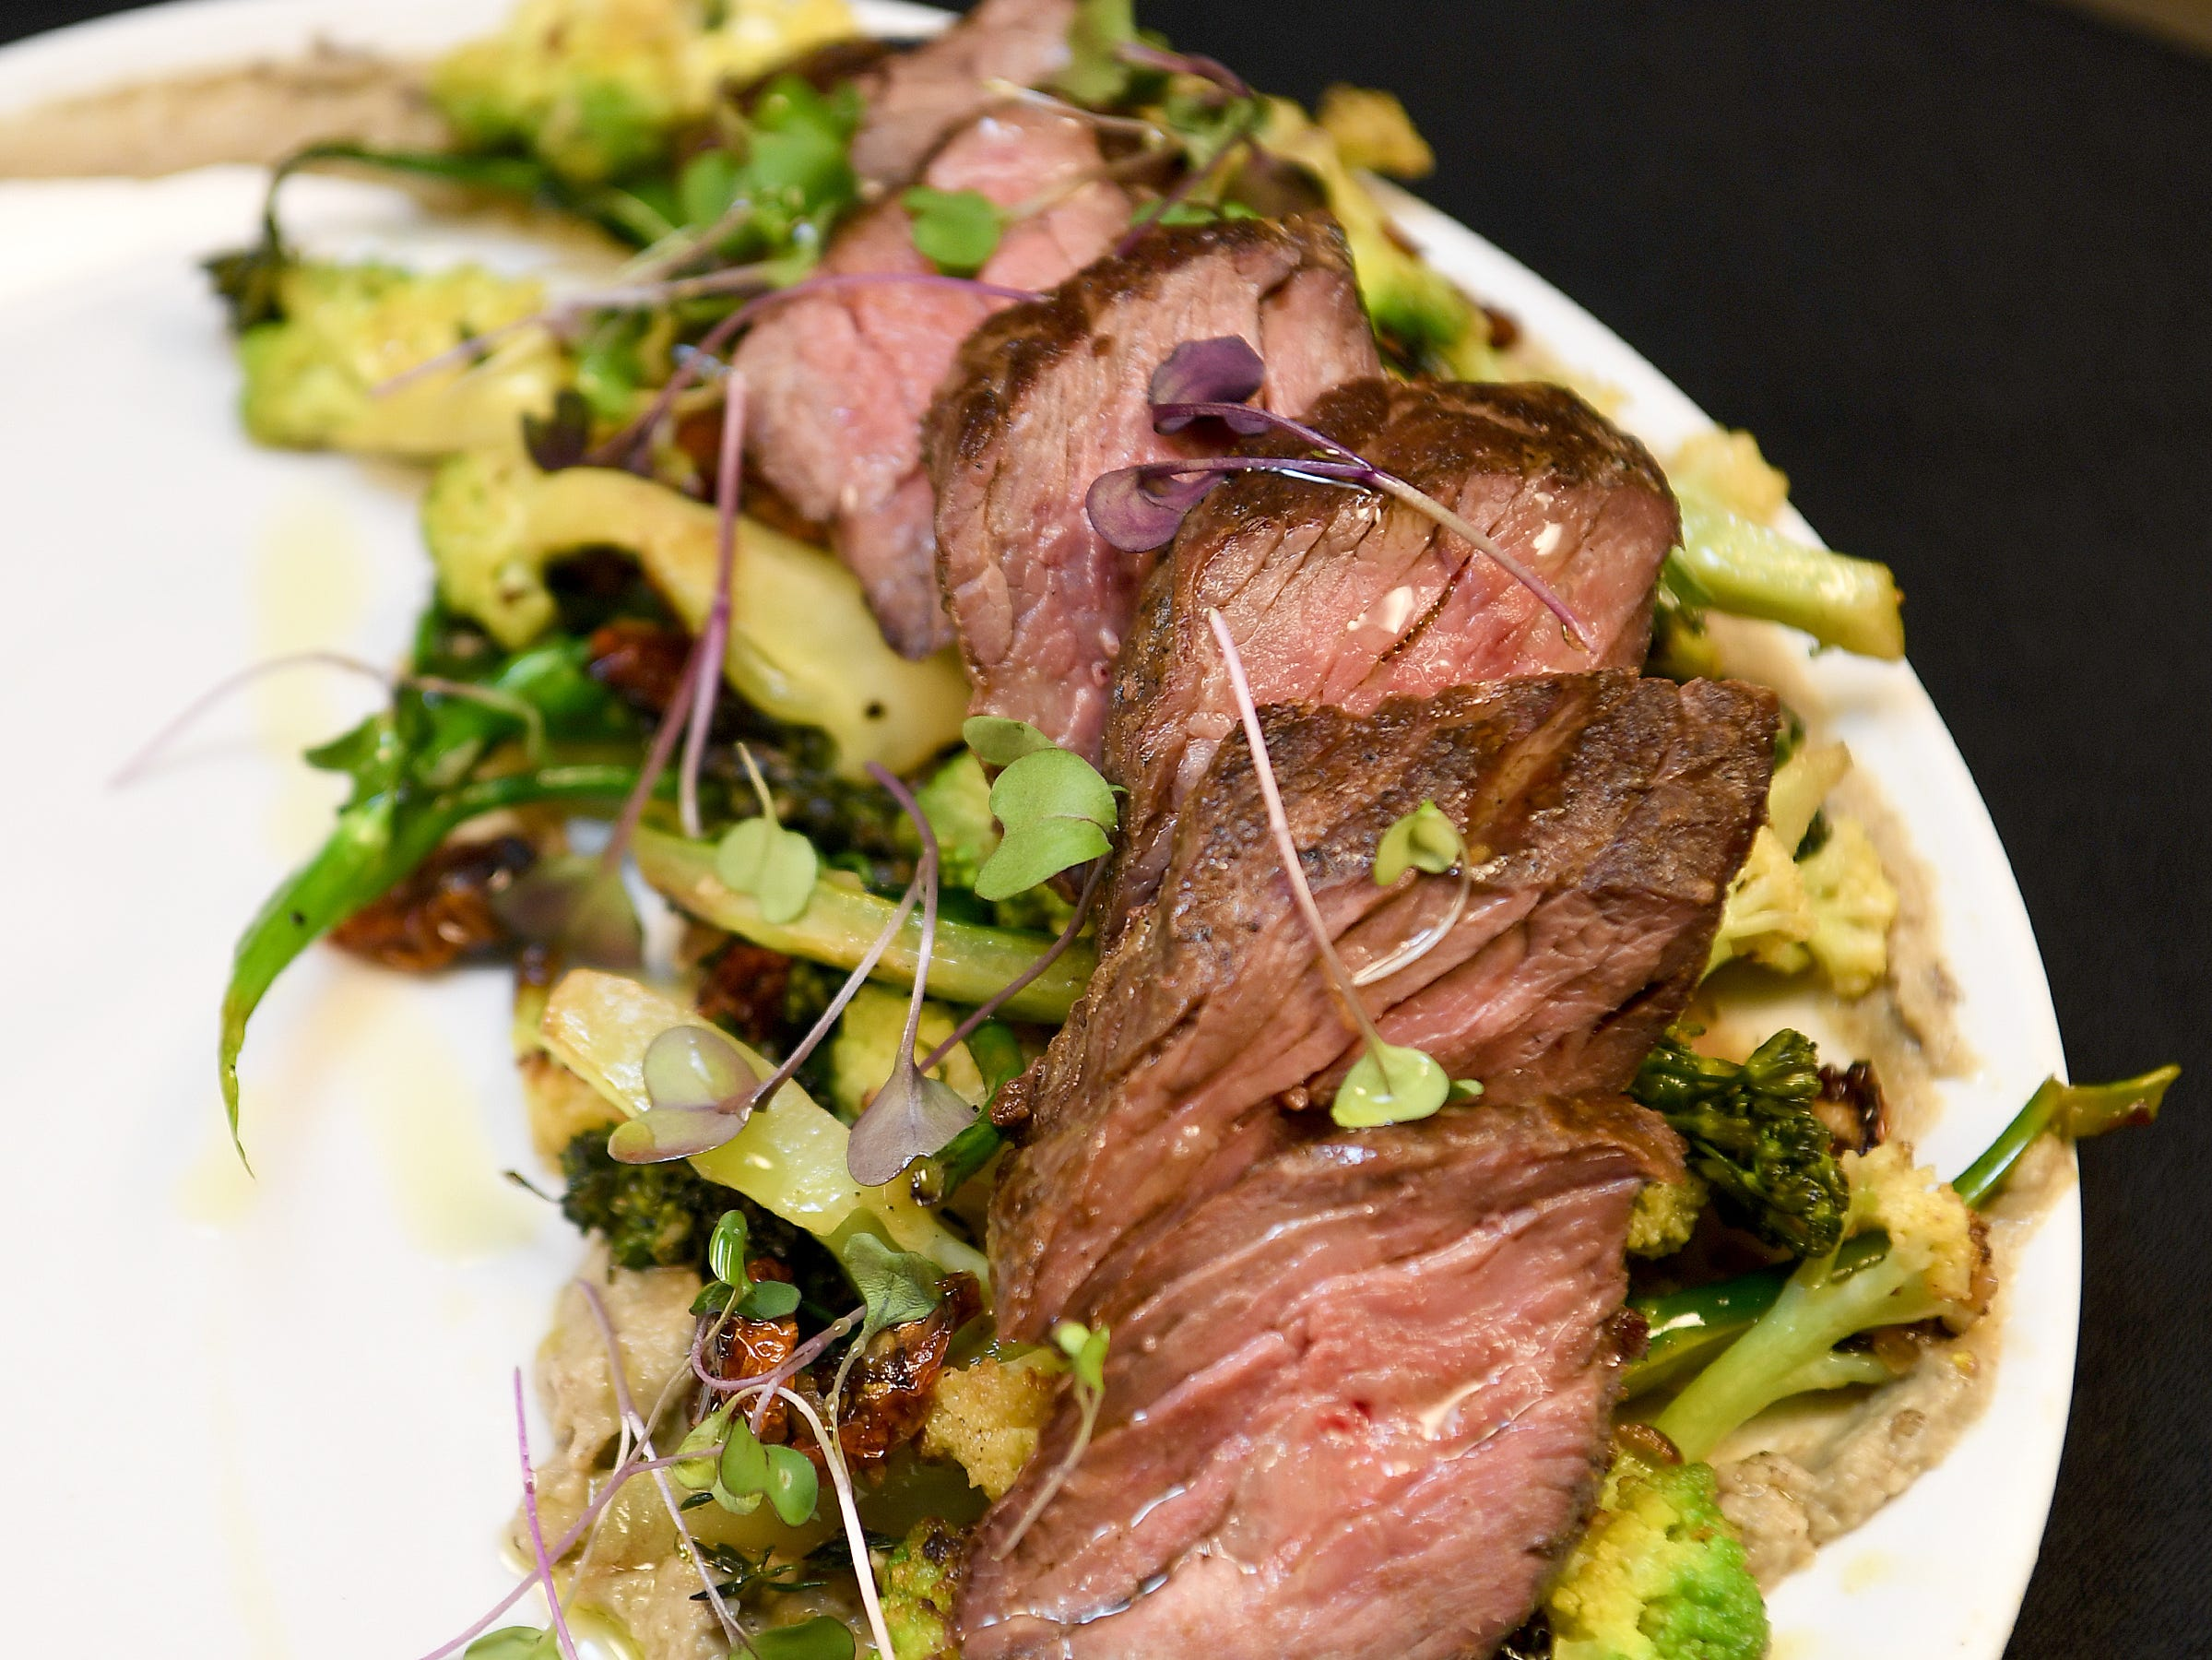 The Bavette steak at Daphne at Twisted Laurel is served with broccolini, smoked baba, tomato, romanesco, chermoula and caulini.